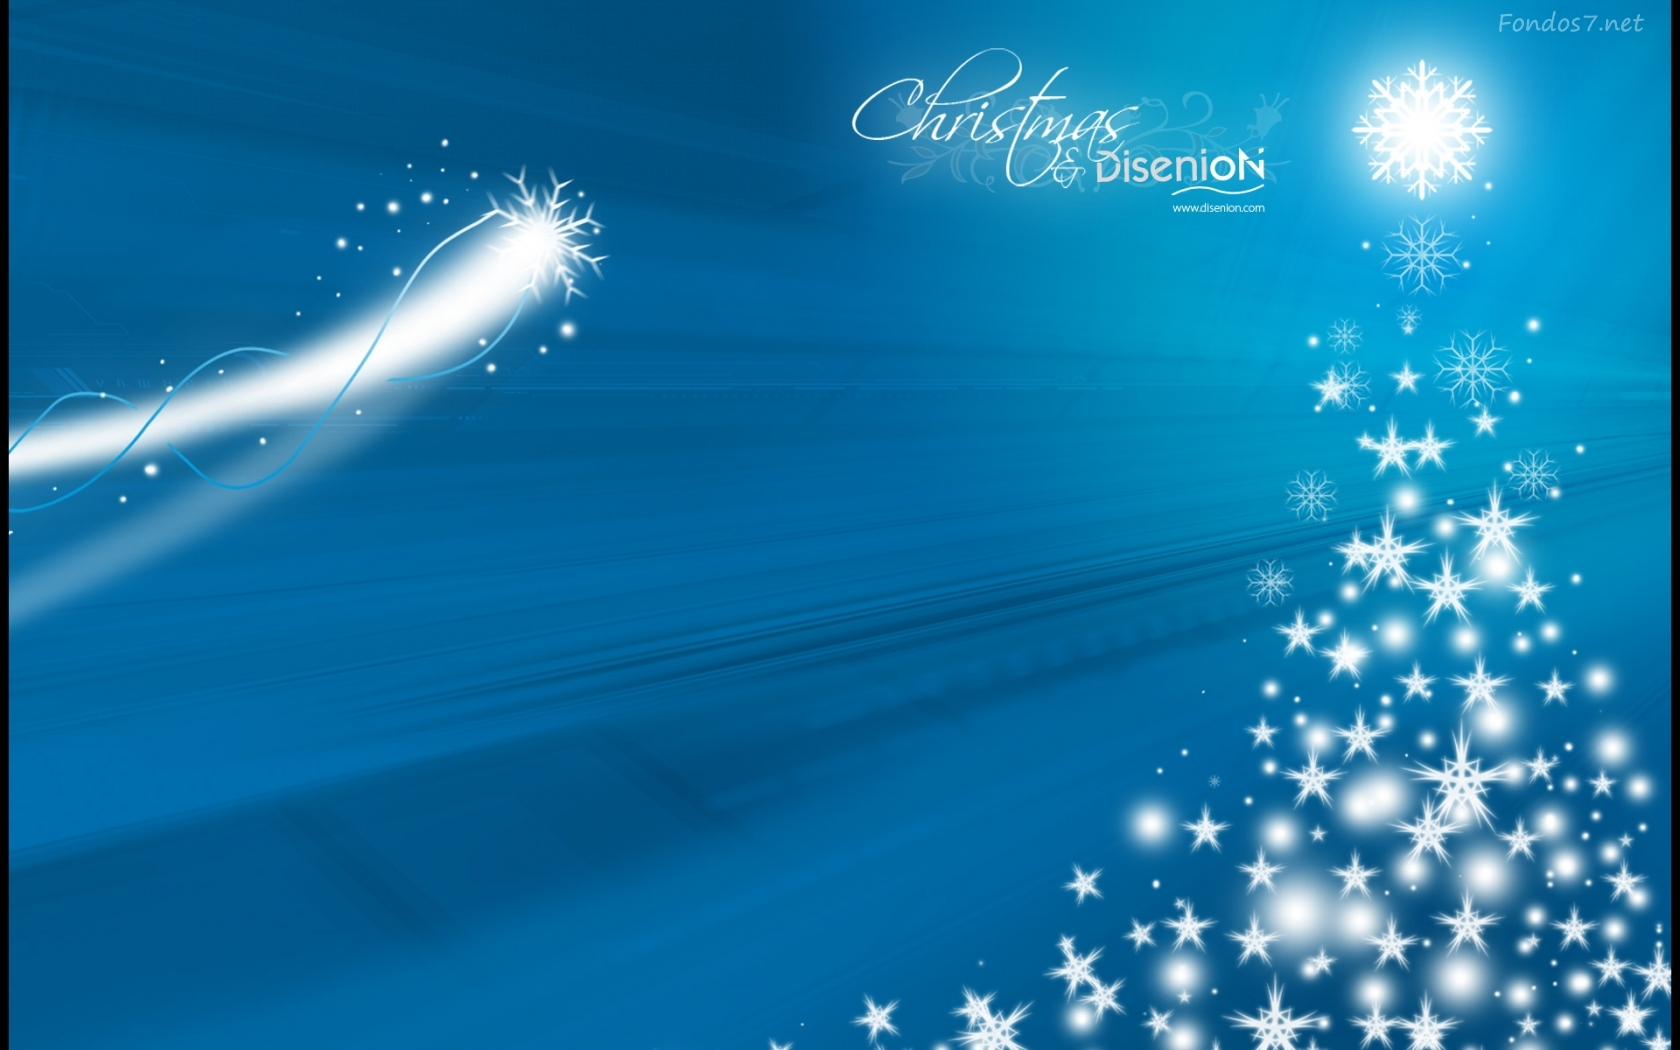 wallpapers christmas imagenes navidenos - photo #15